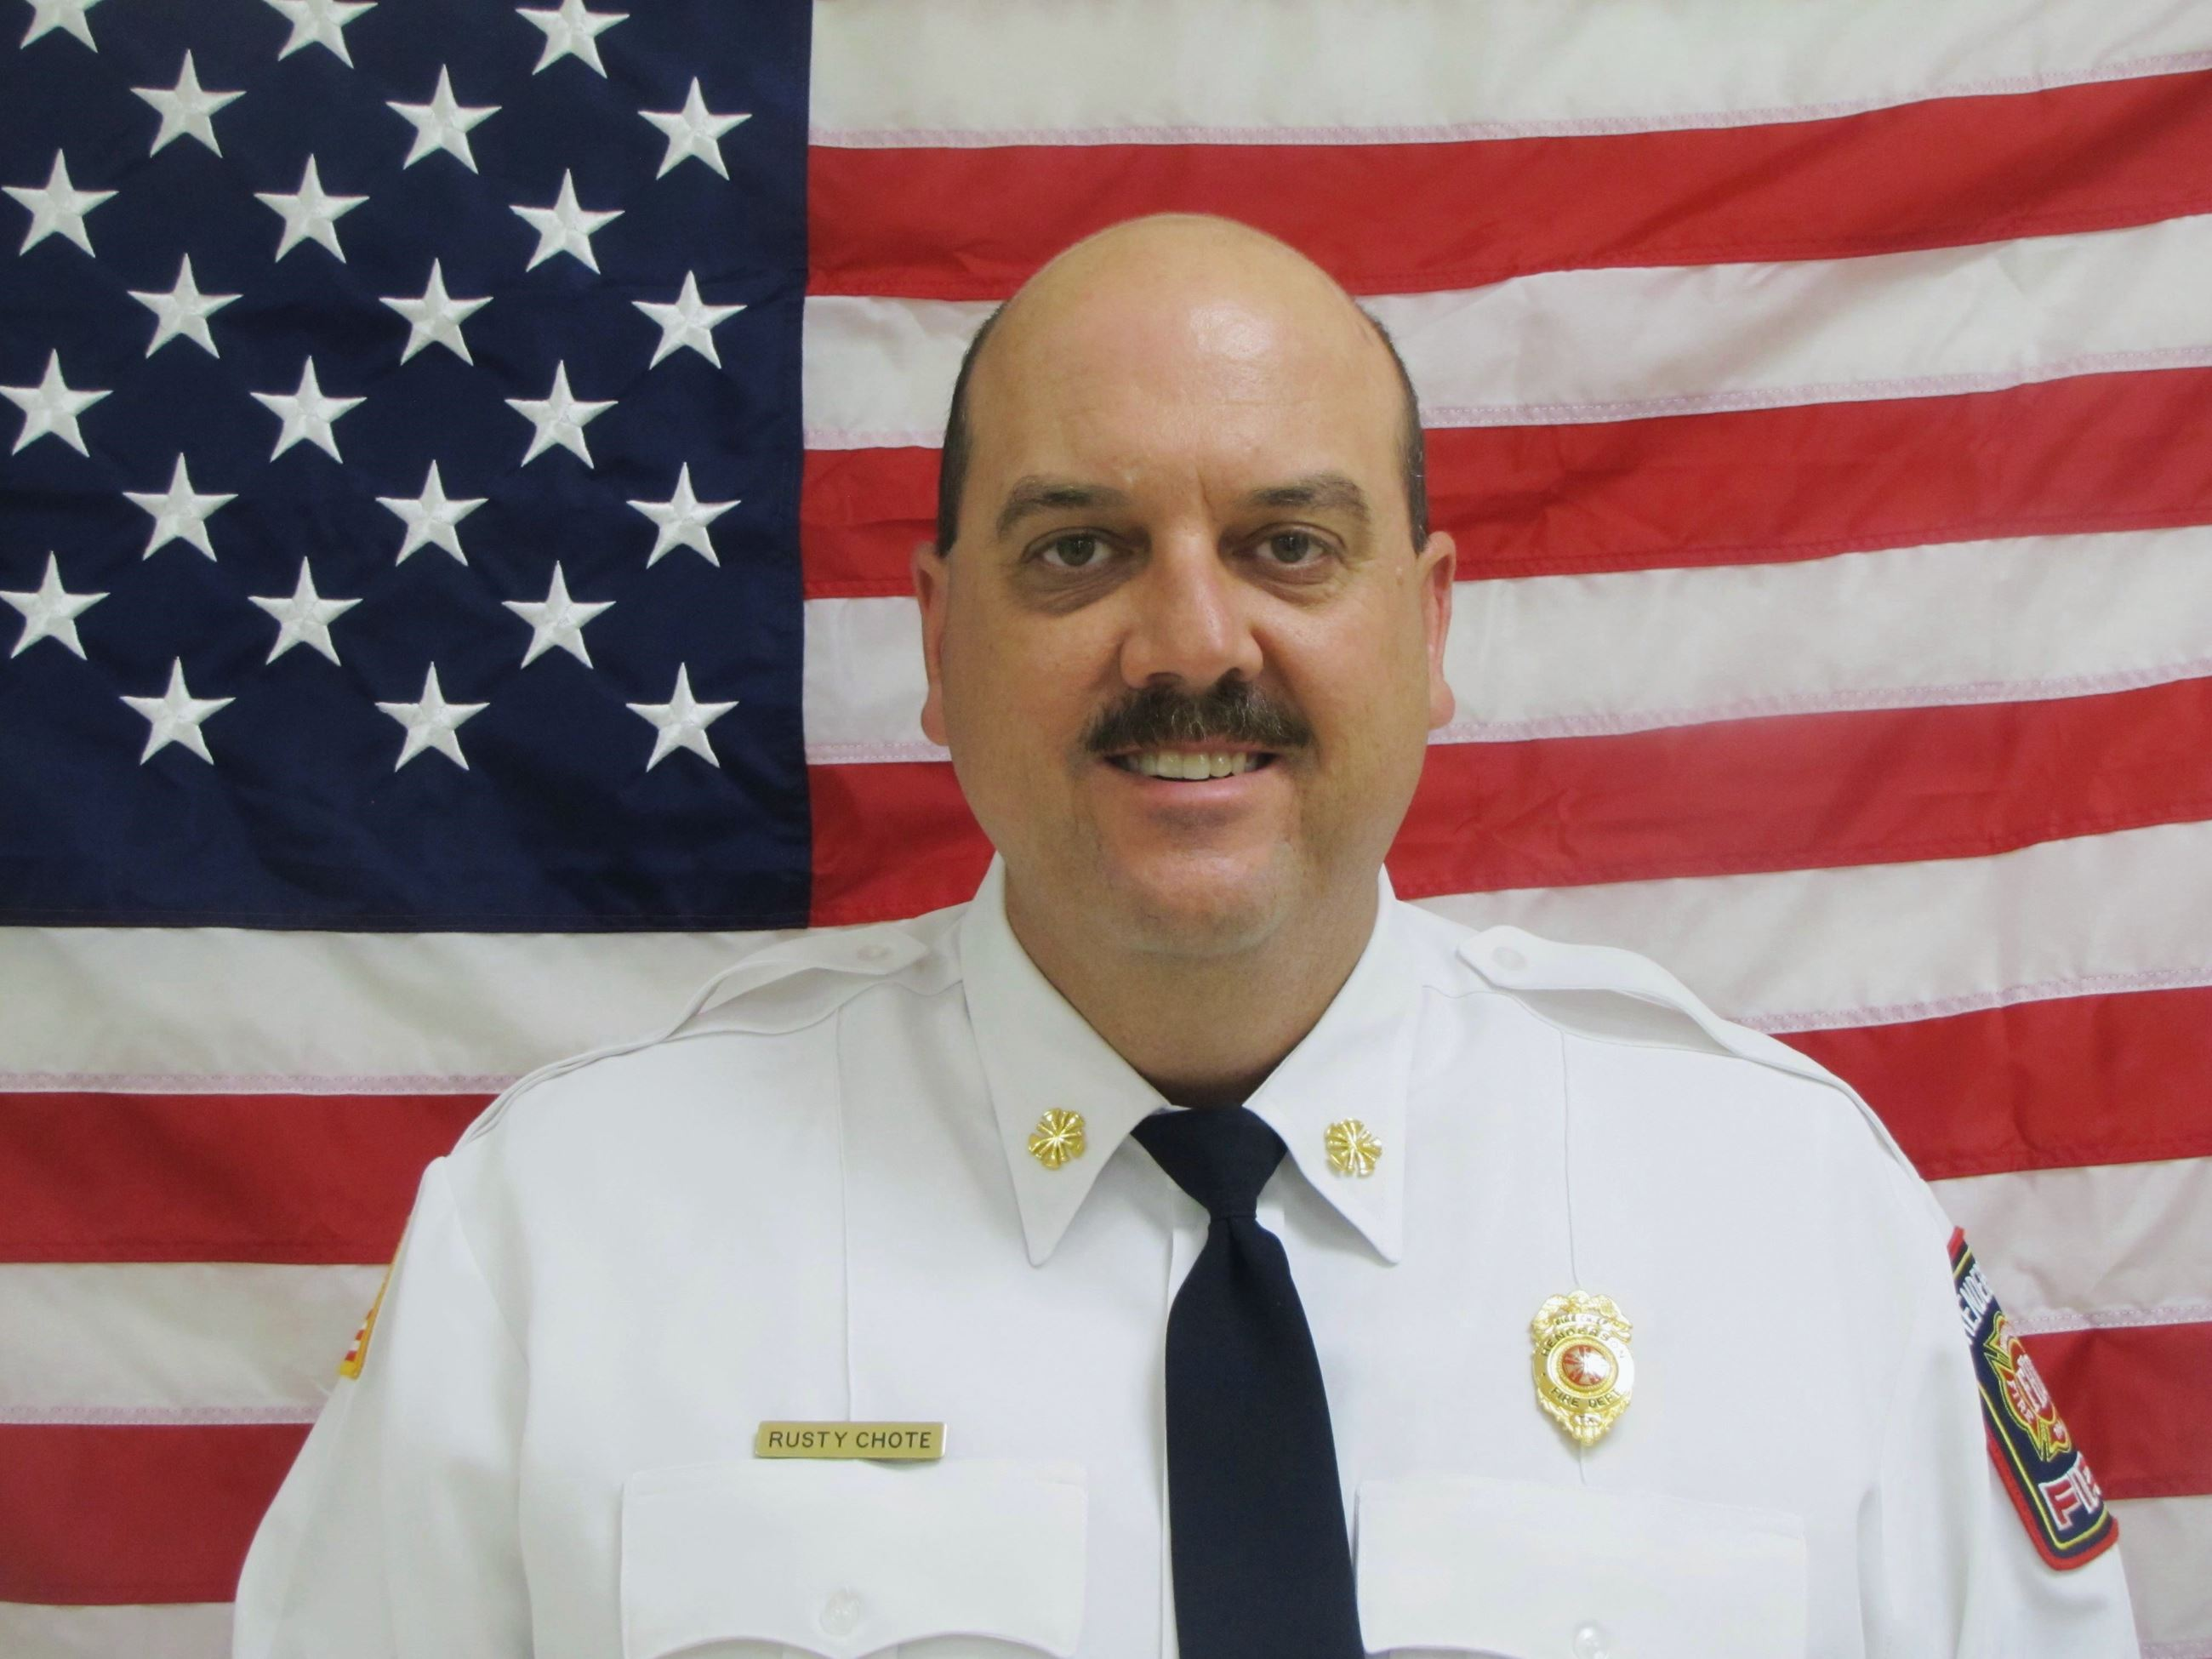 Closeup of Fire Chief Rusty Chote standing in front of American Flag